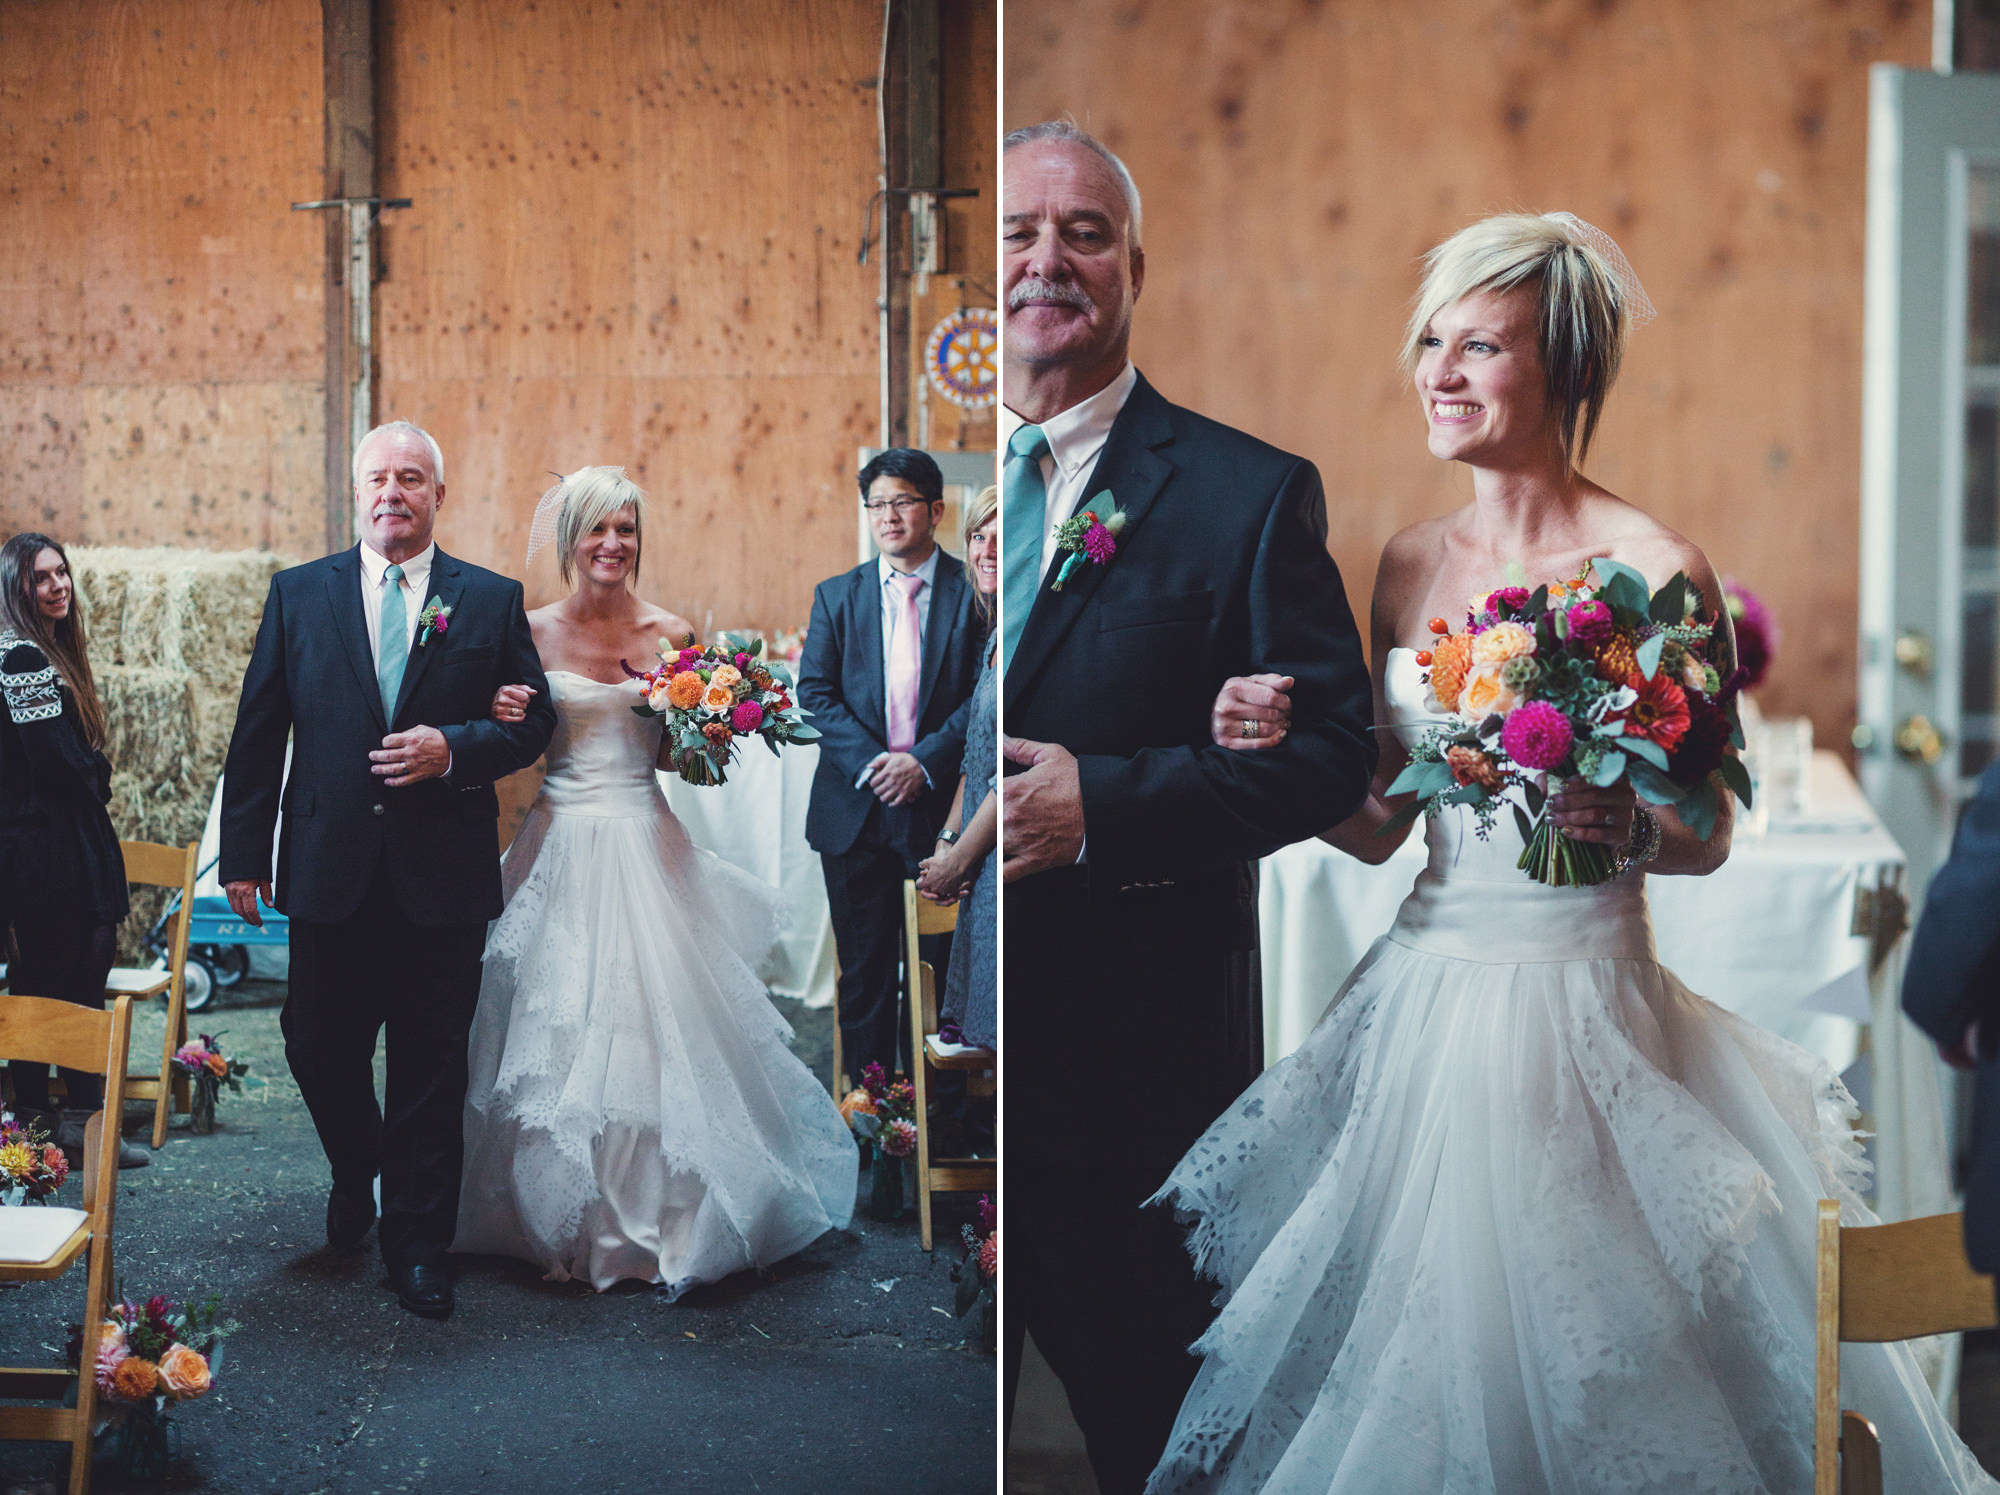 Toby's Feed Barn Wedding ©Anne-Claire Brun 77